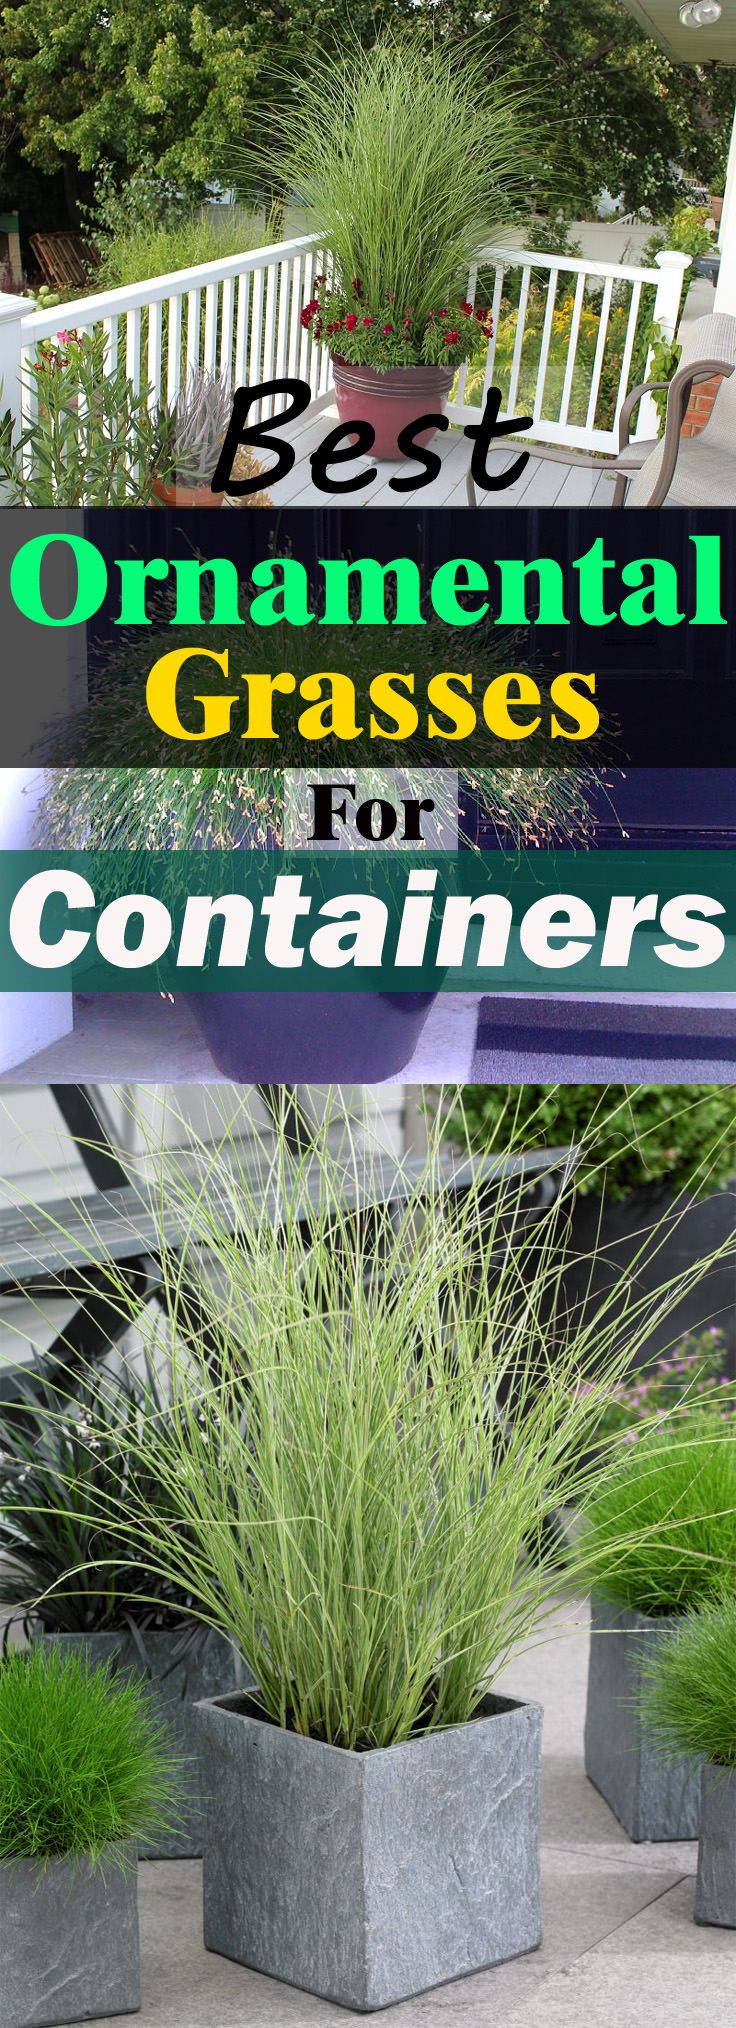 Best Ornamental Grasses For Containers And How To Grow Them Grasses Landscaping Ornamental Grasses Patio Plants